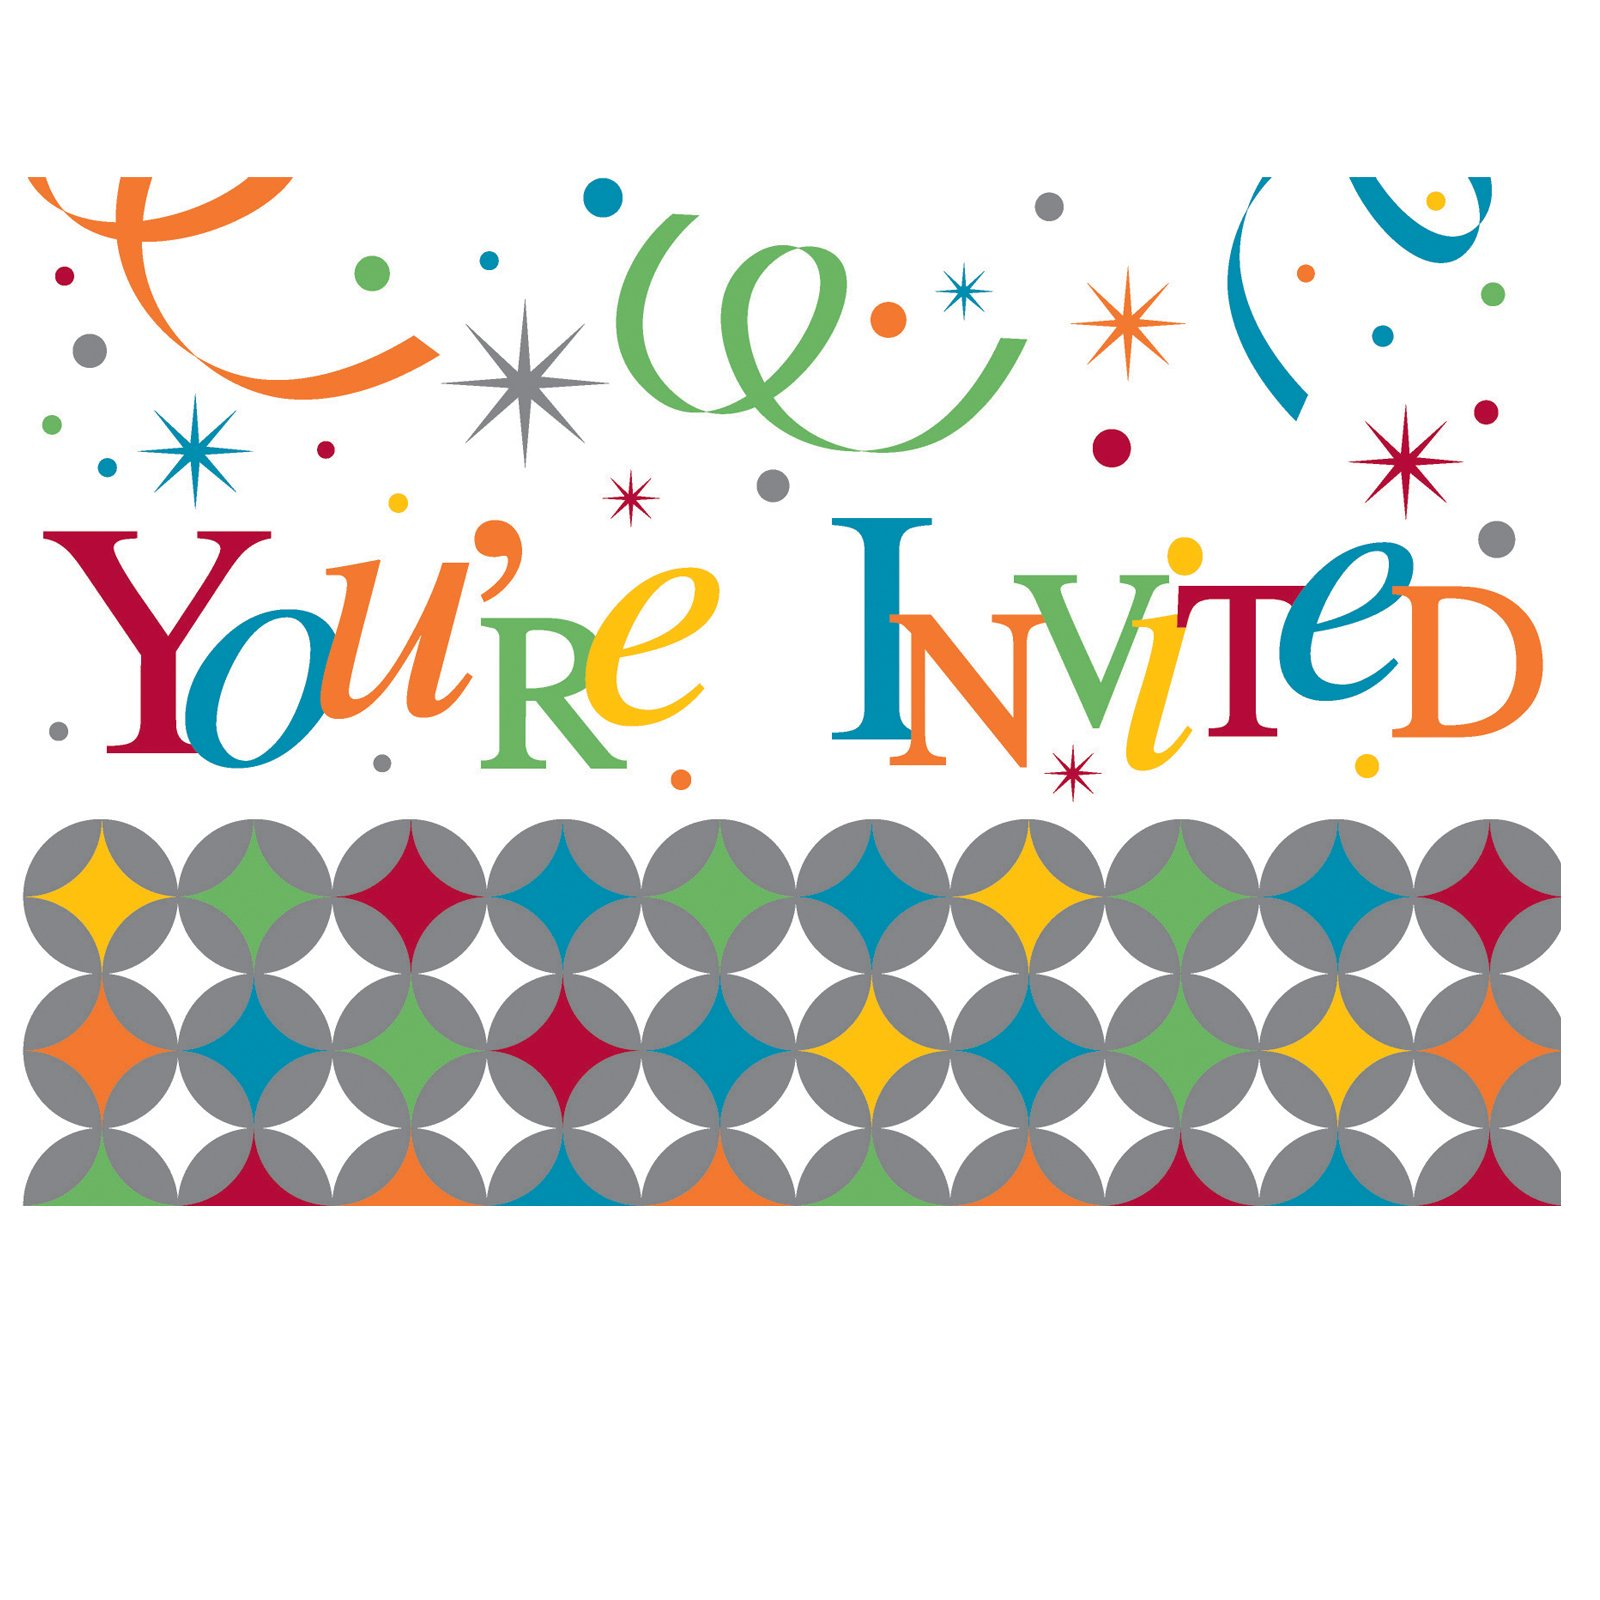 Celebrate In Style Invitations (8 count)